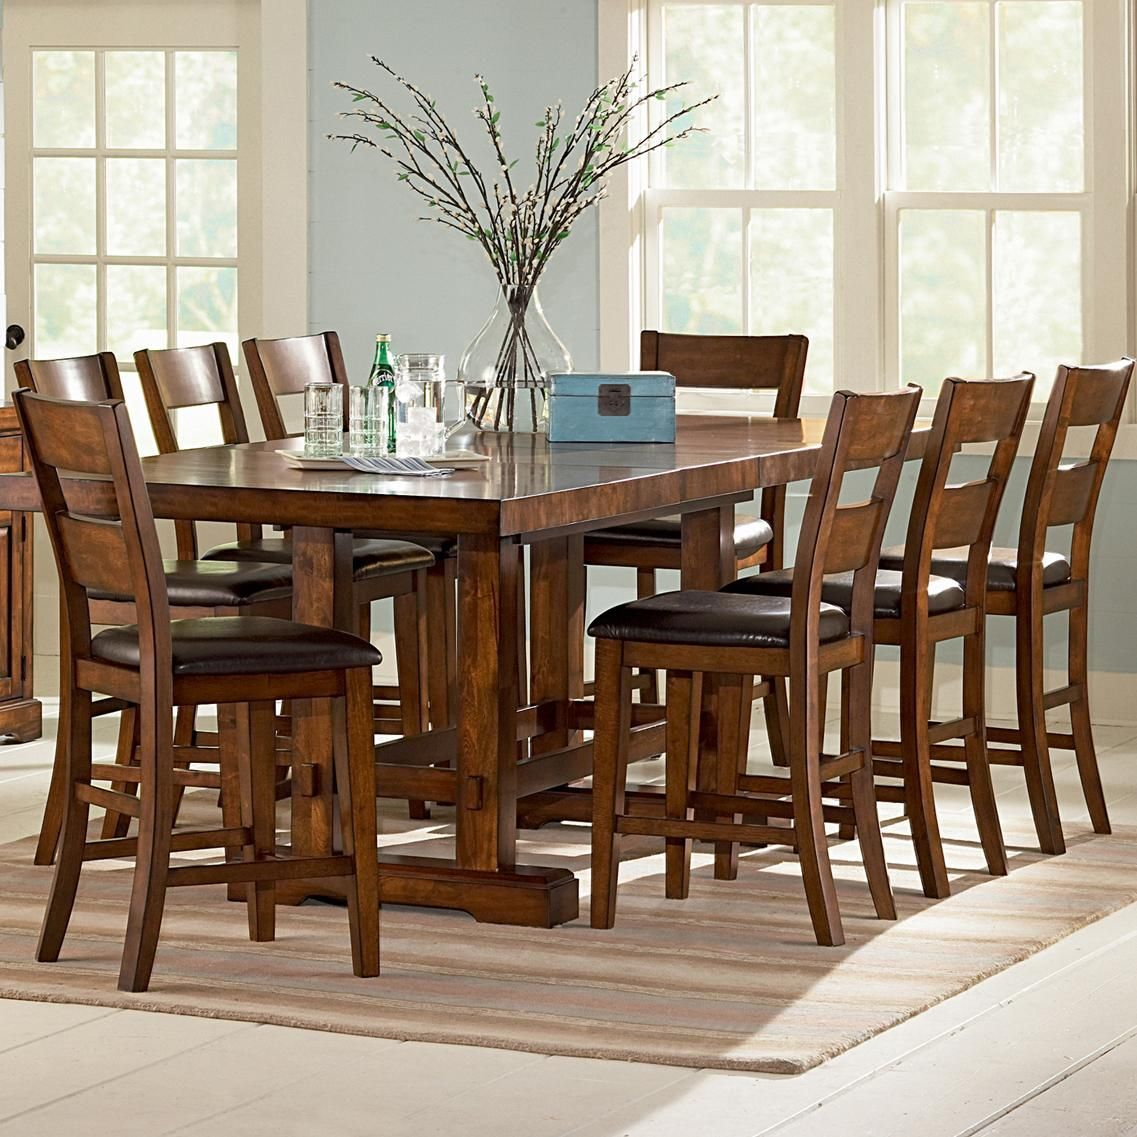 Zappa 9 Piece Counter Height Table Chair Set By Vendor 3985